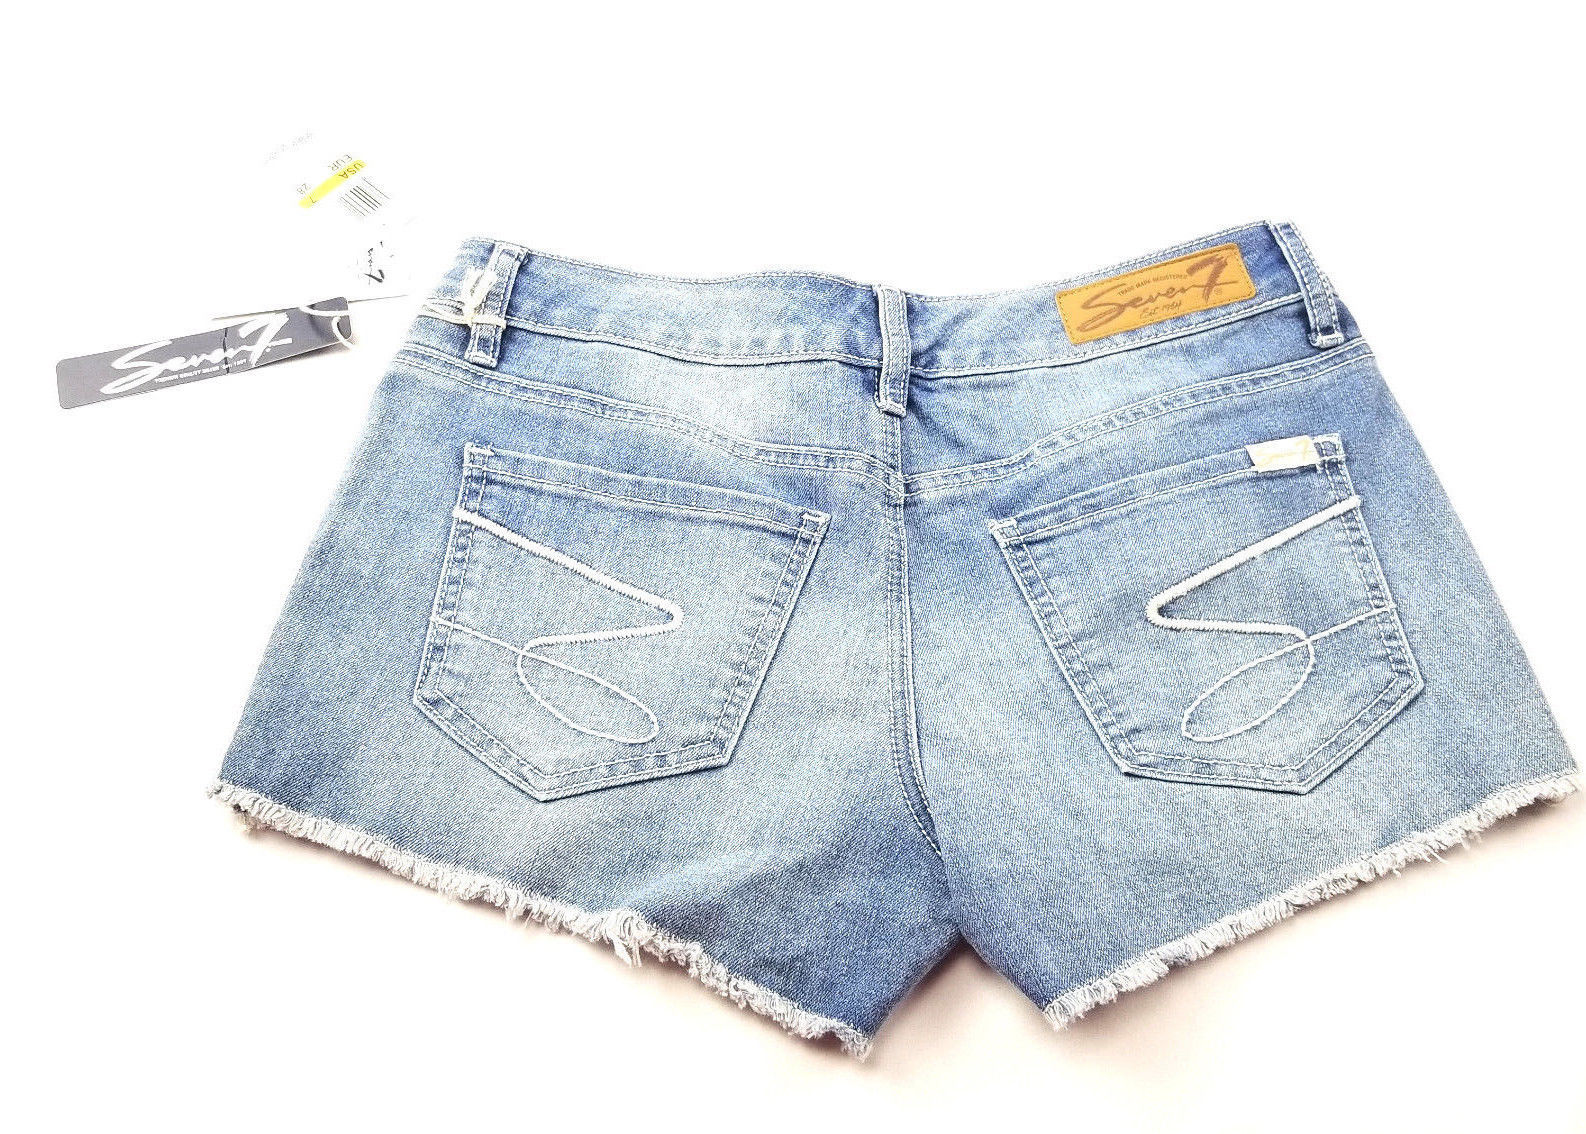 Seven7 Womens Jeans Shorts Size 7 Lace Detail NEW image 2